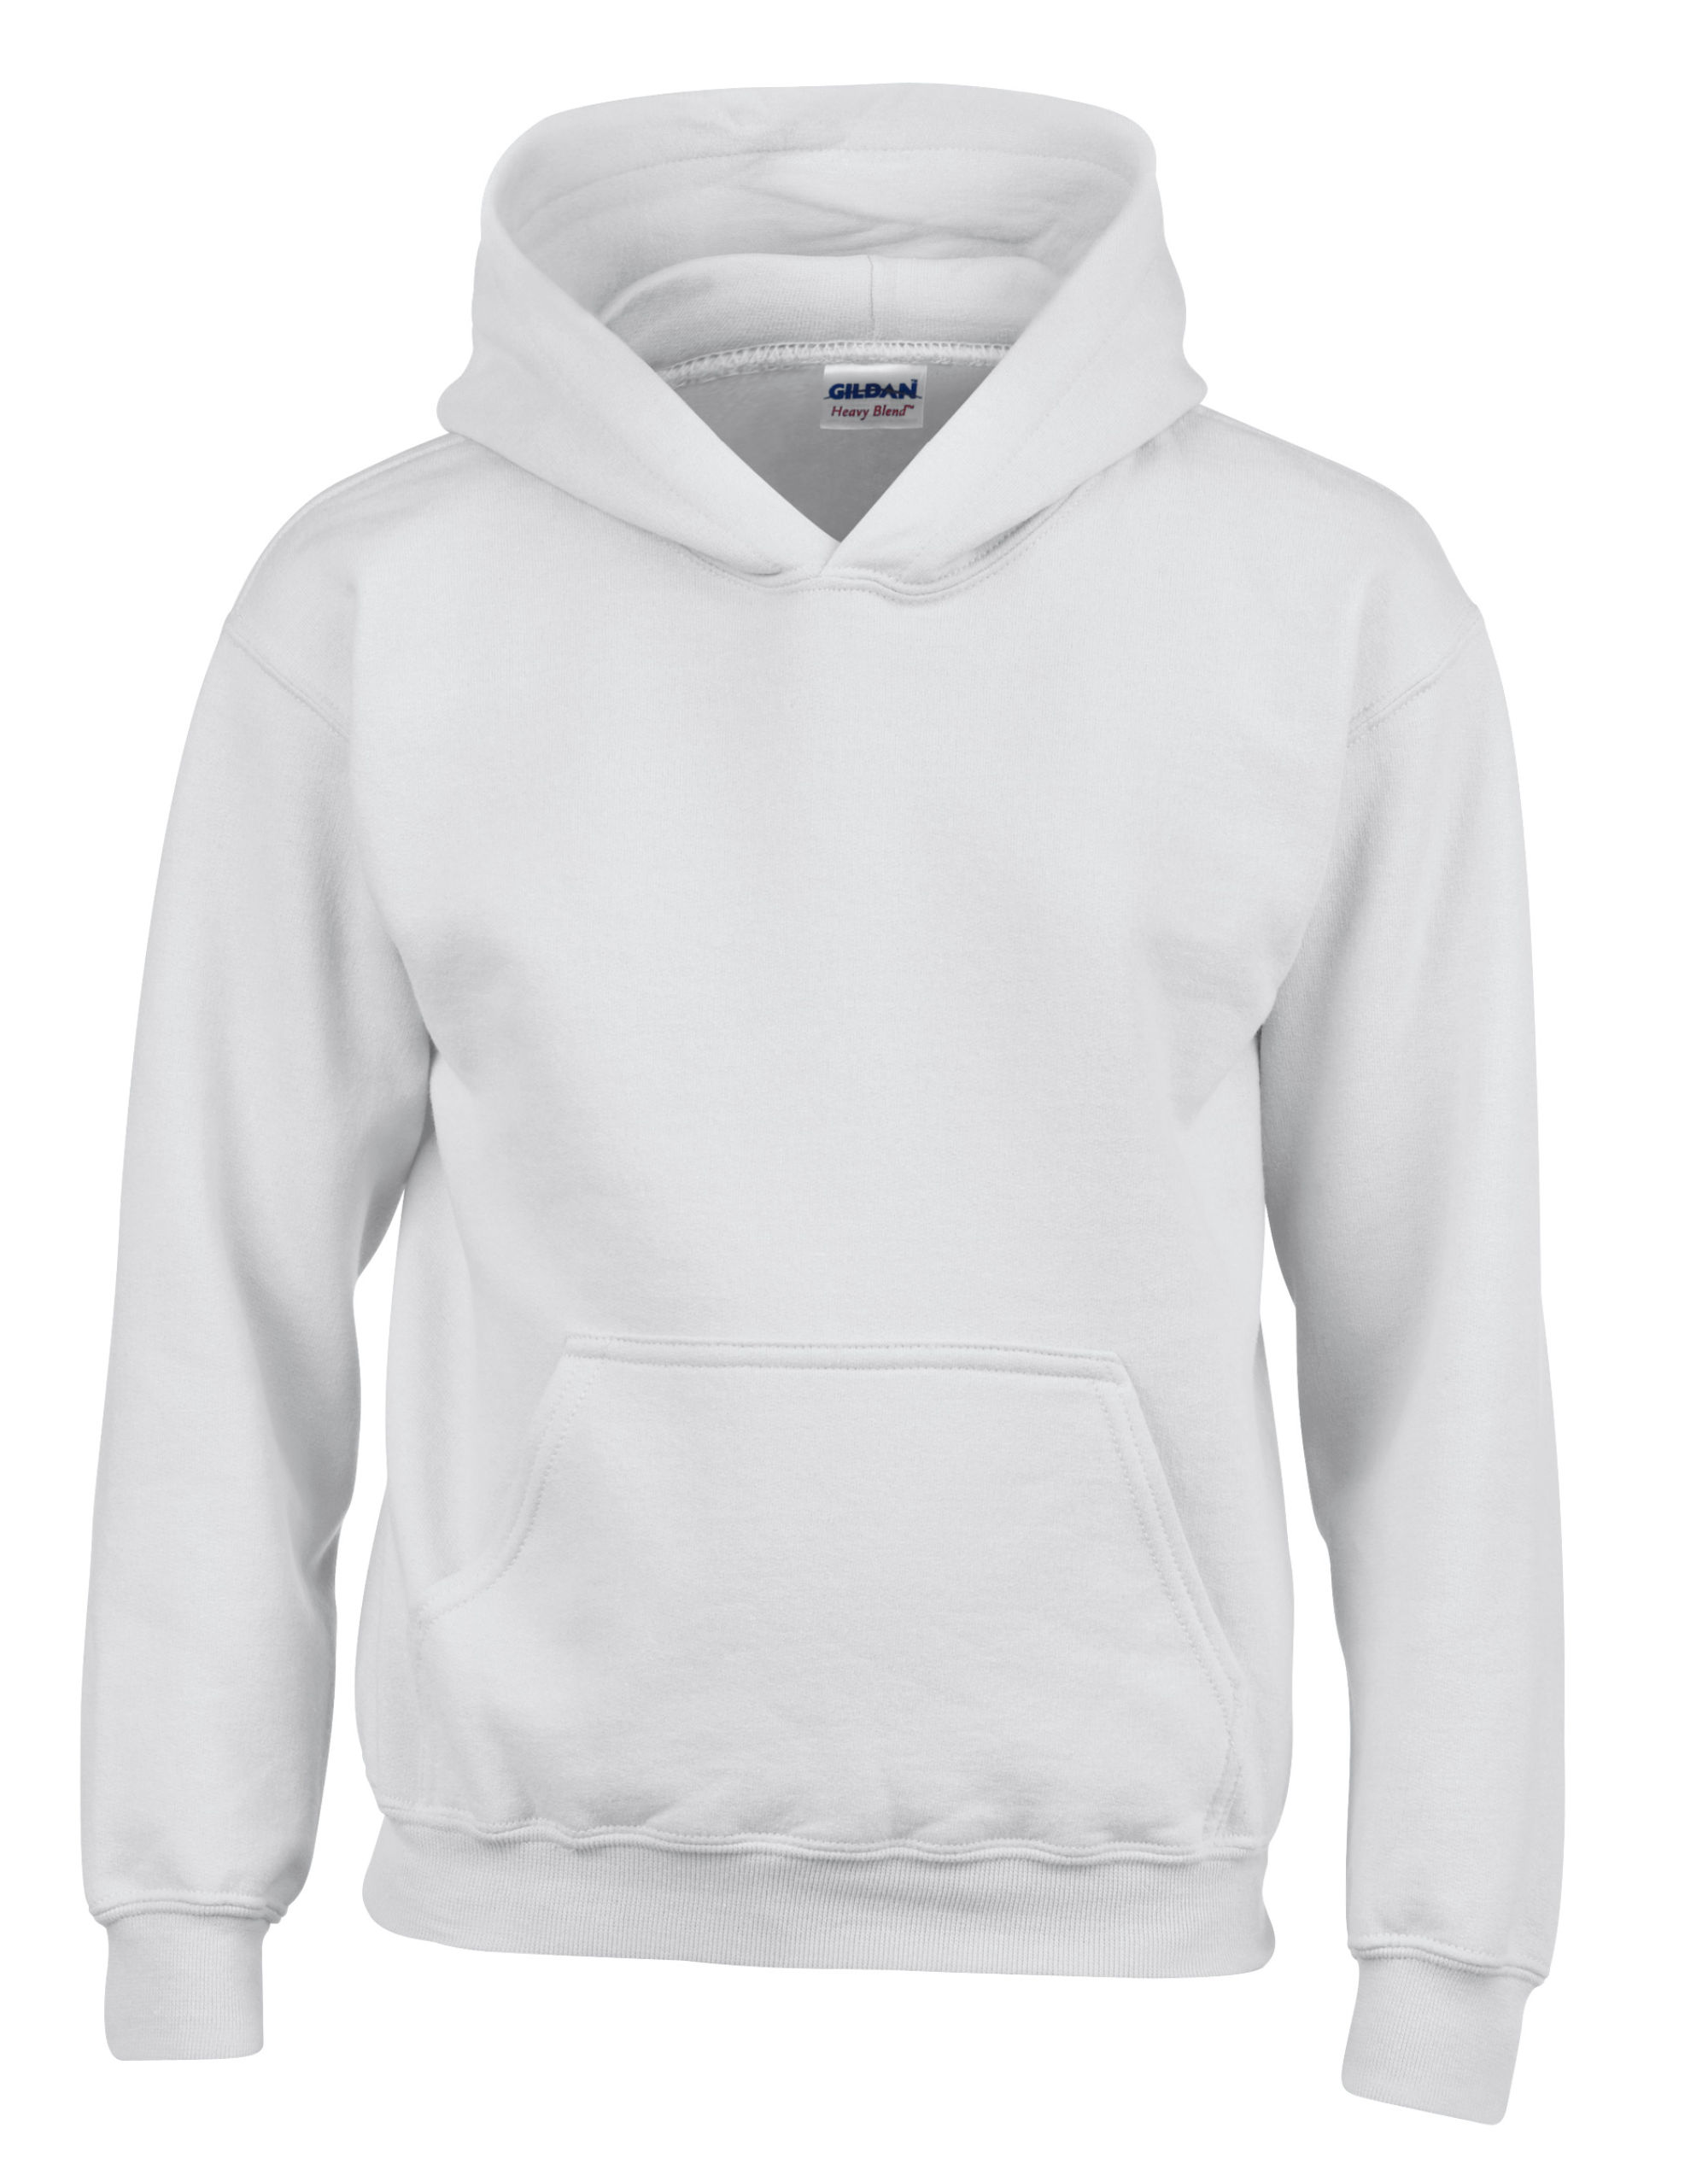 Heavy Blend Children's Hooded Sweatshirt